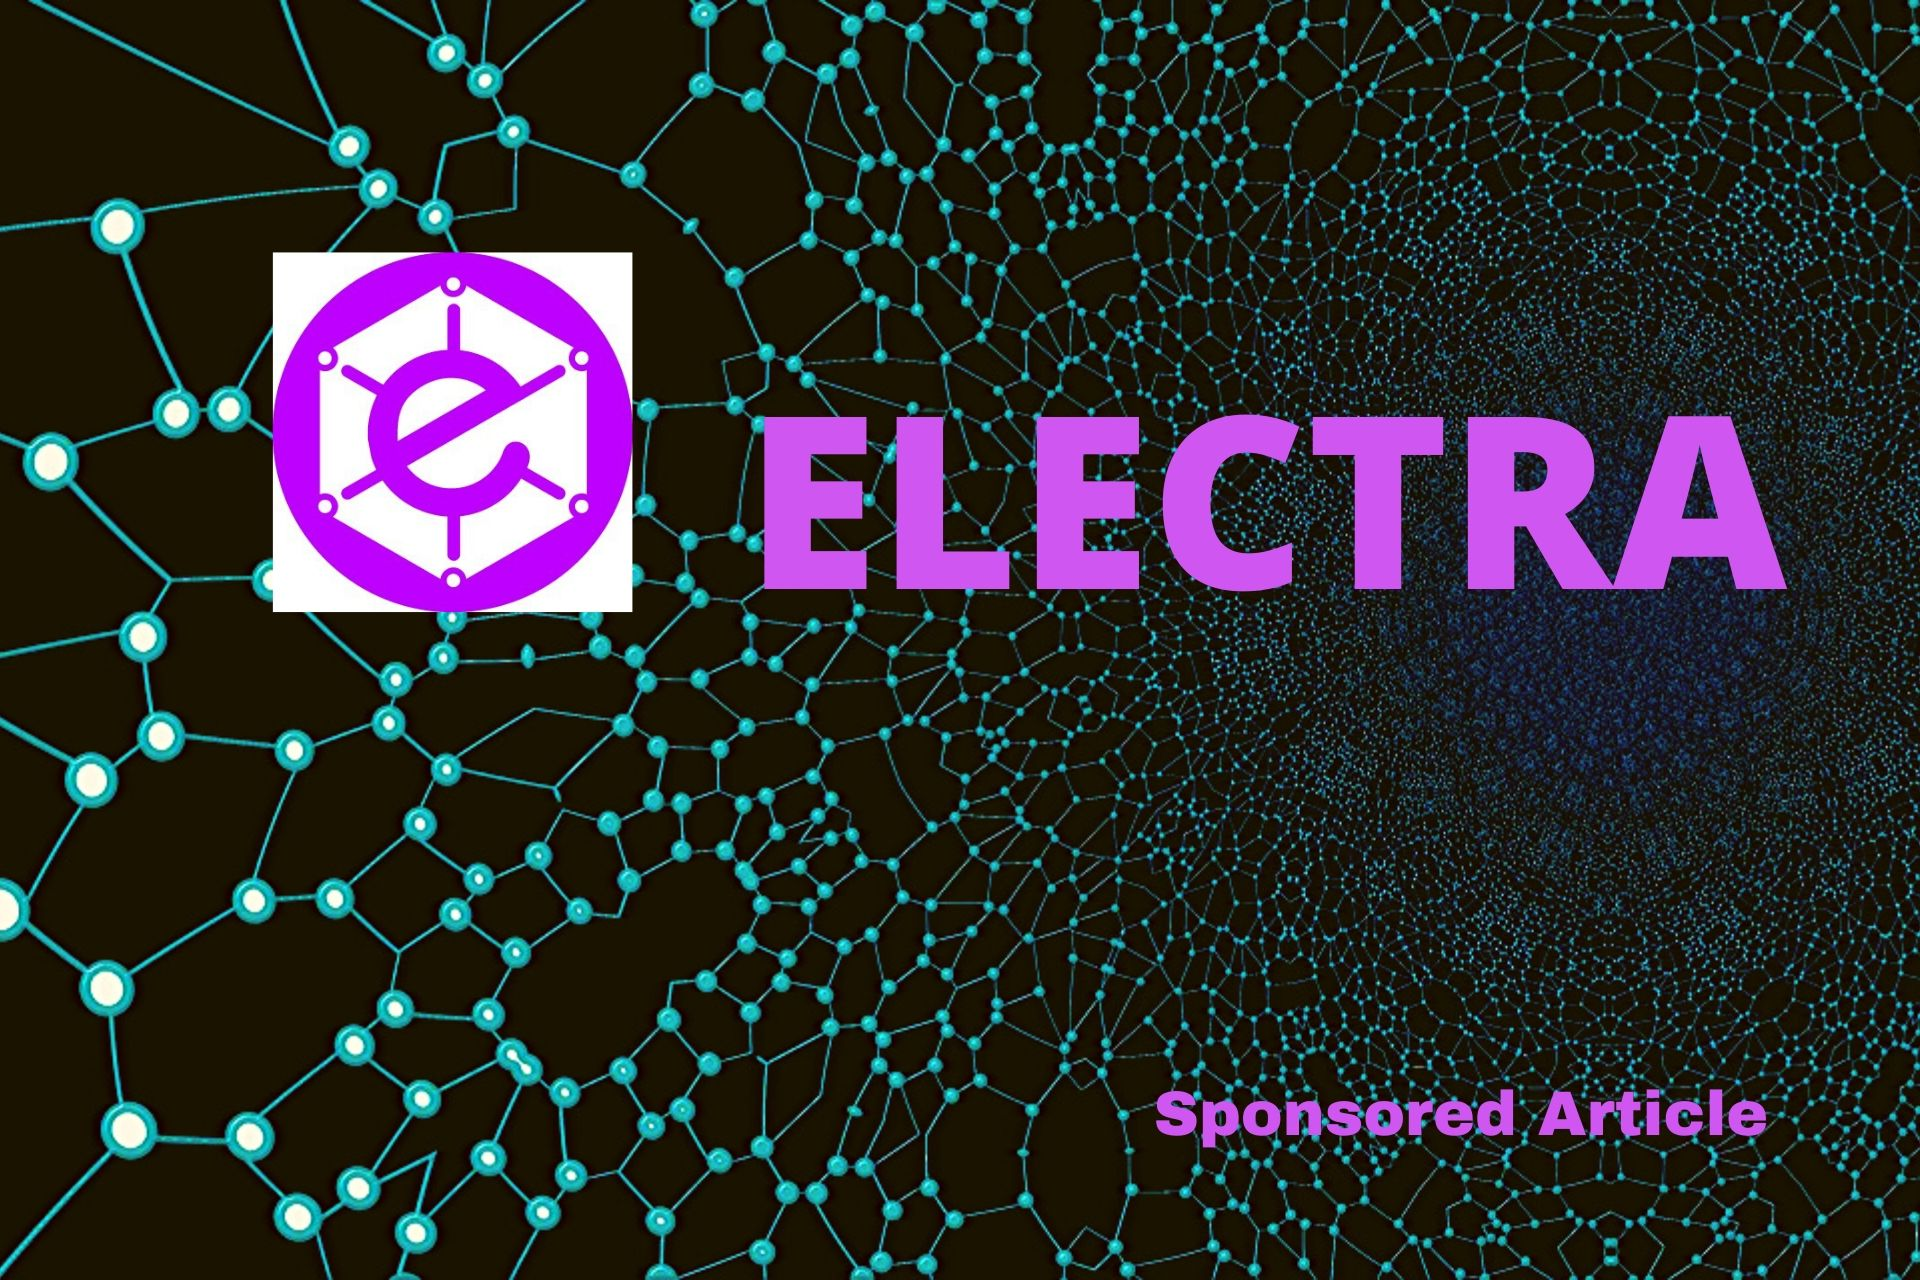 The Electra Project